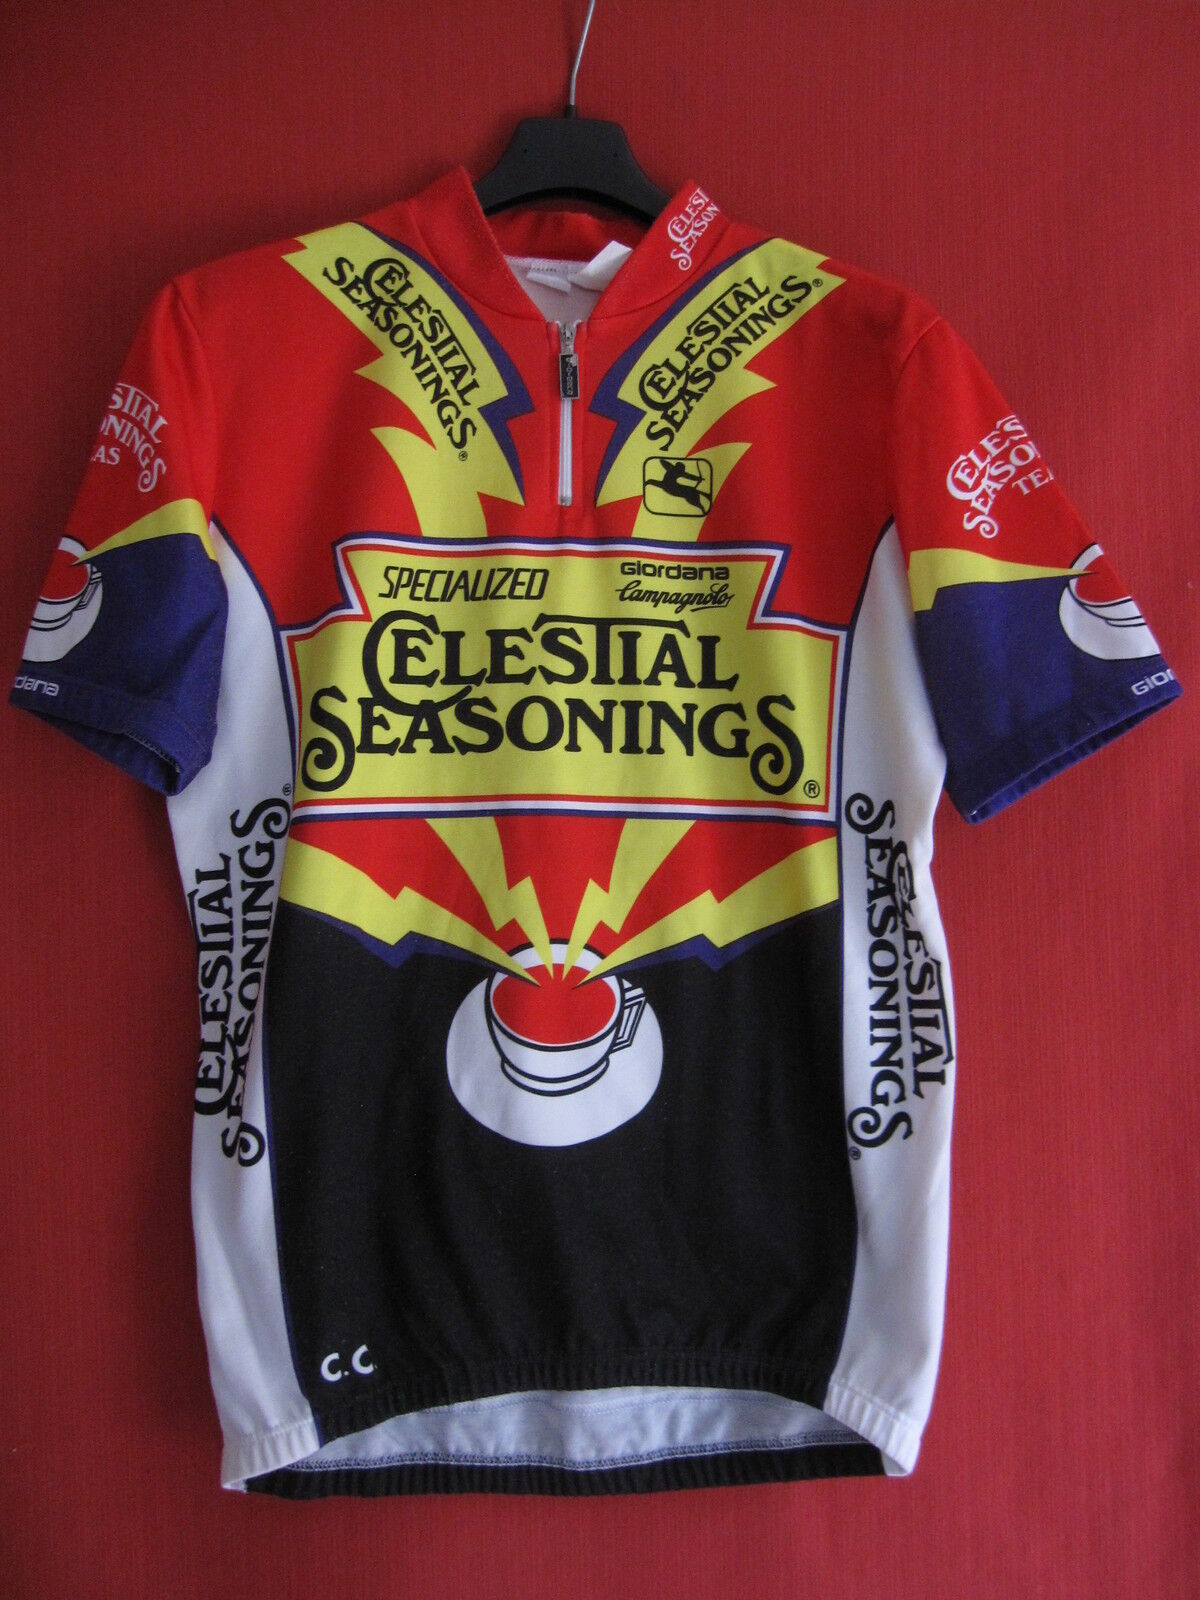 Maillot cycliste Celestial Seasonings rosso Zinger Bicycle Vintage jersey  4  L